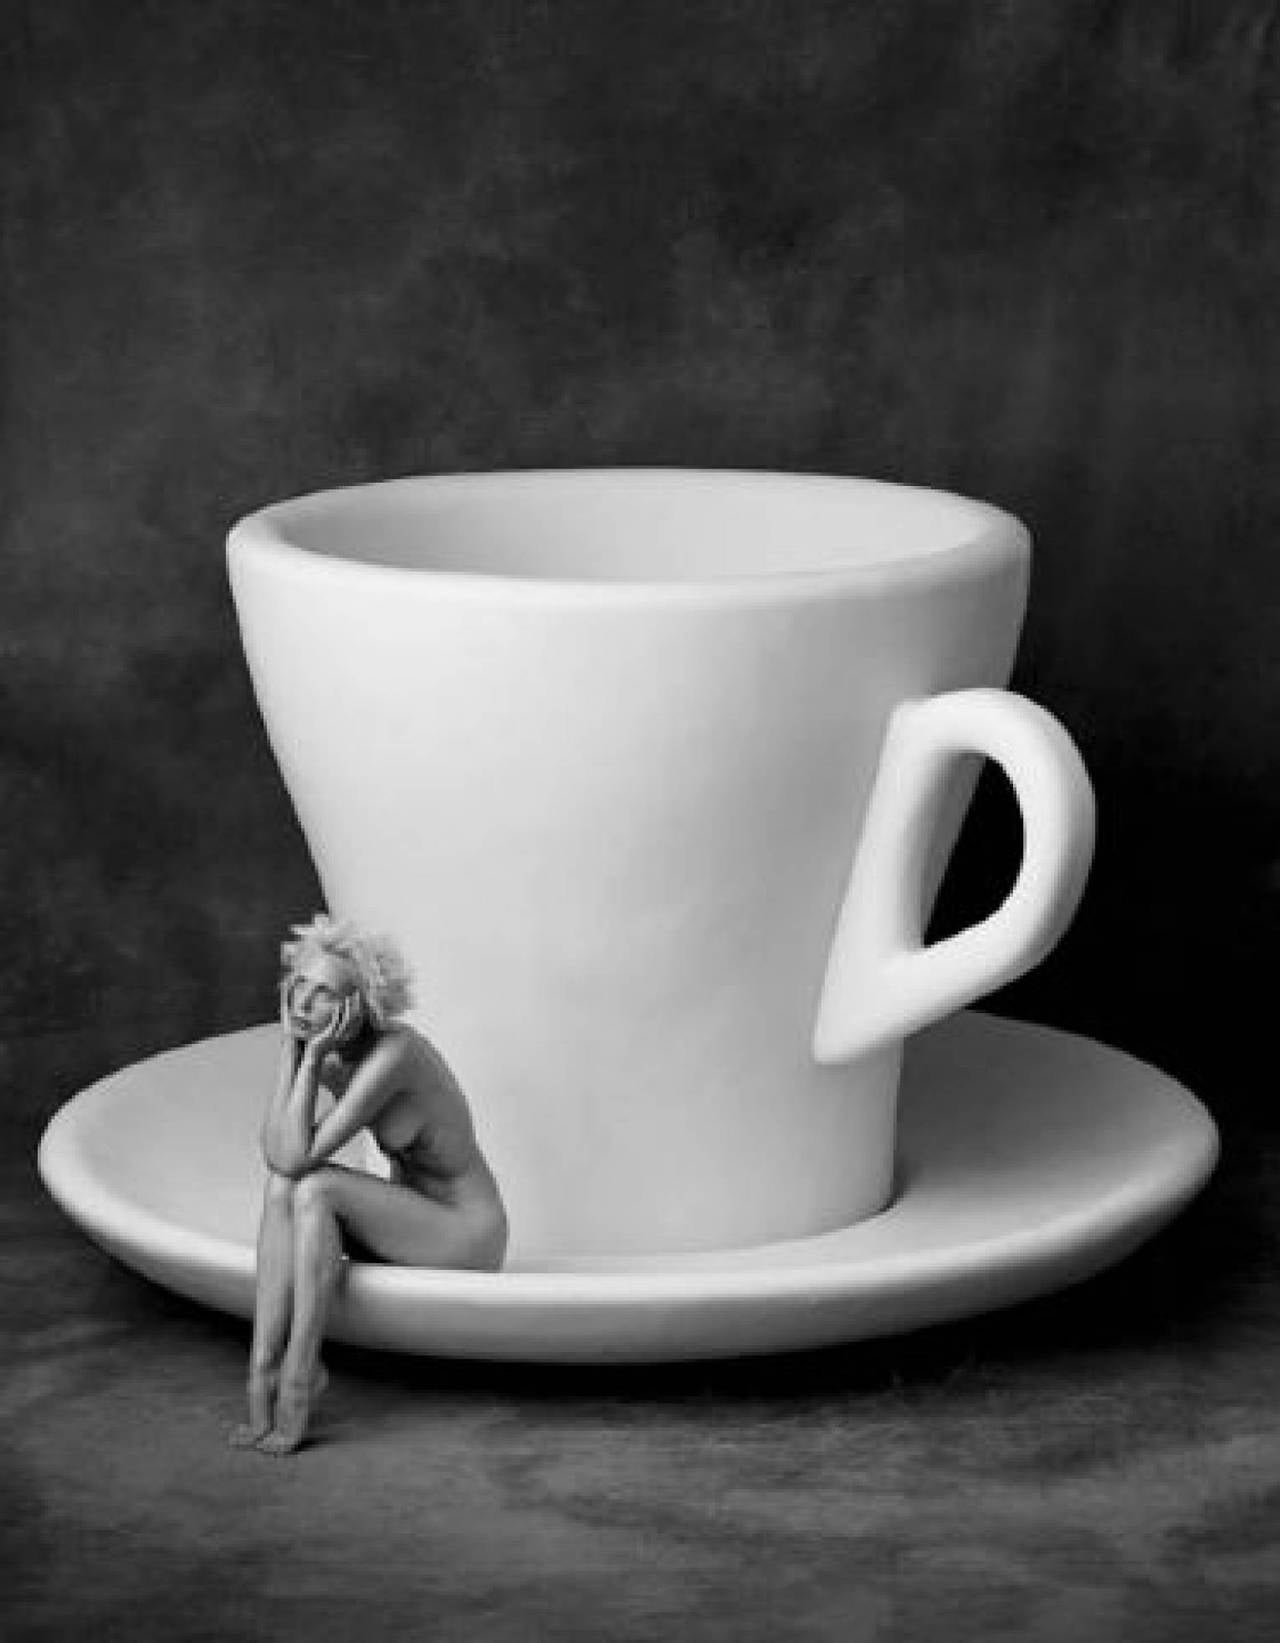 Carmen with a Cup 1